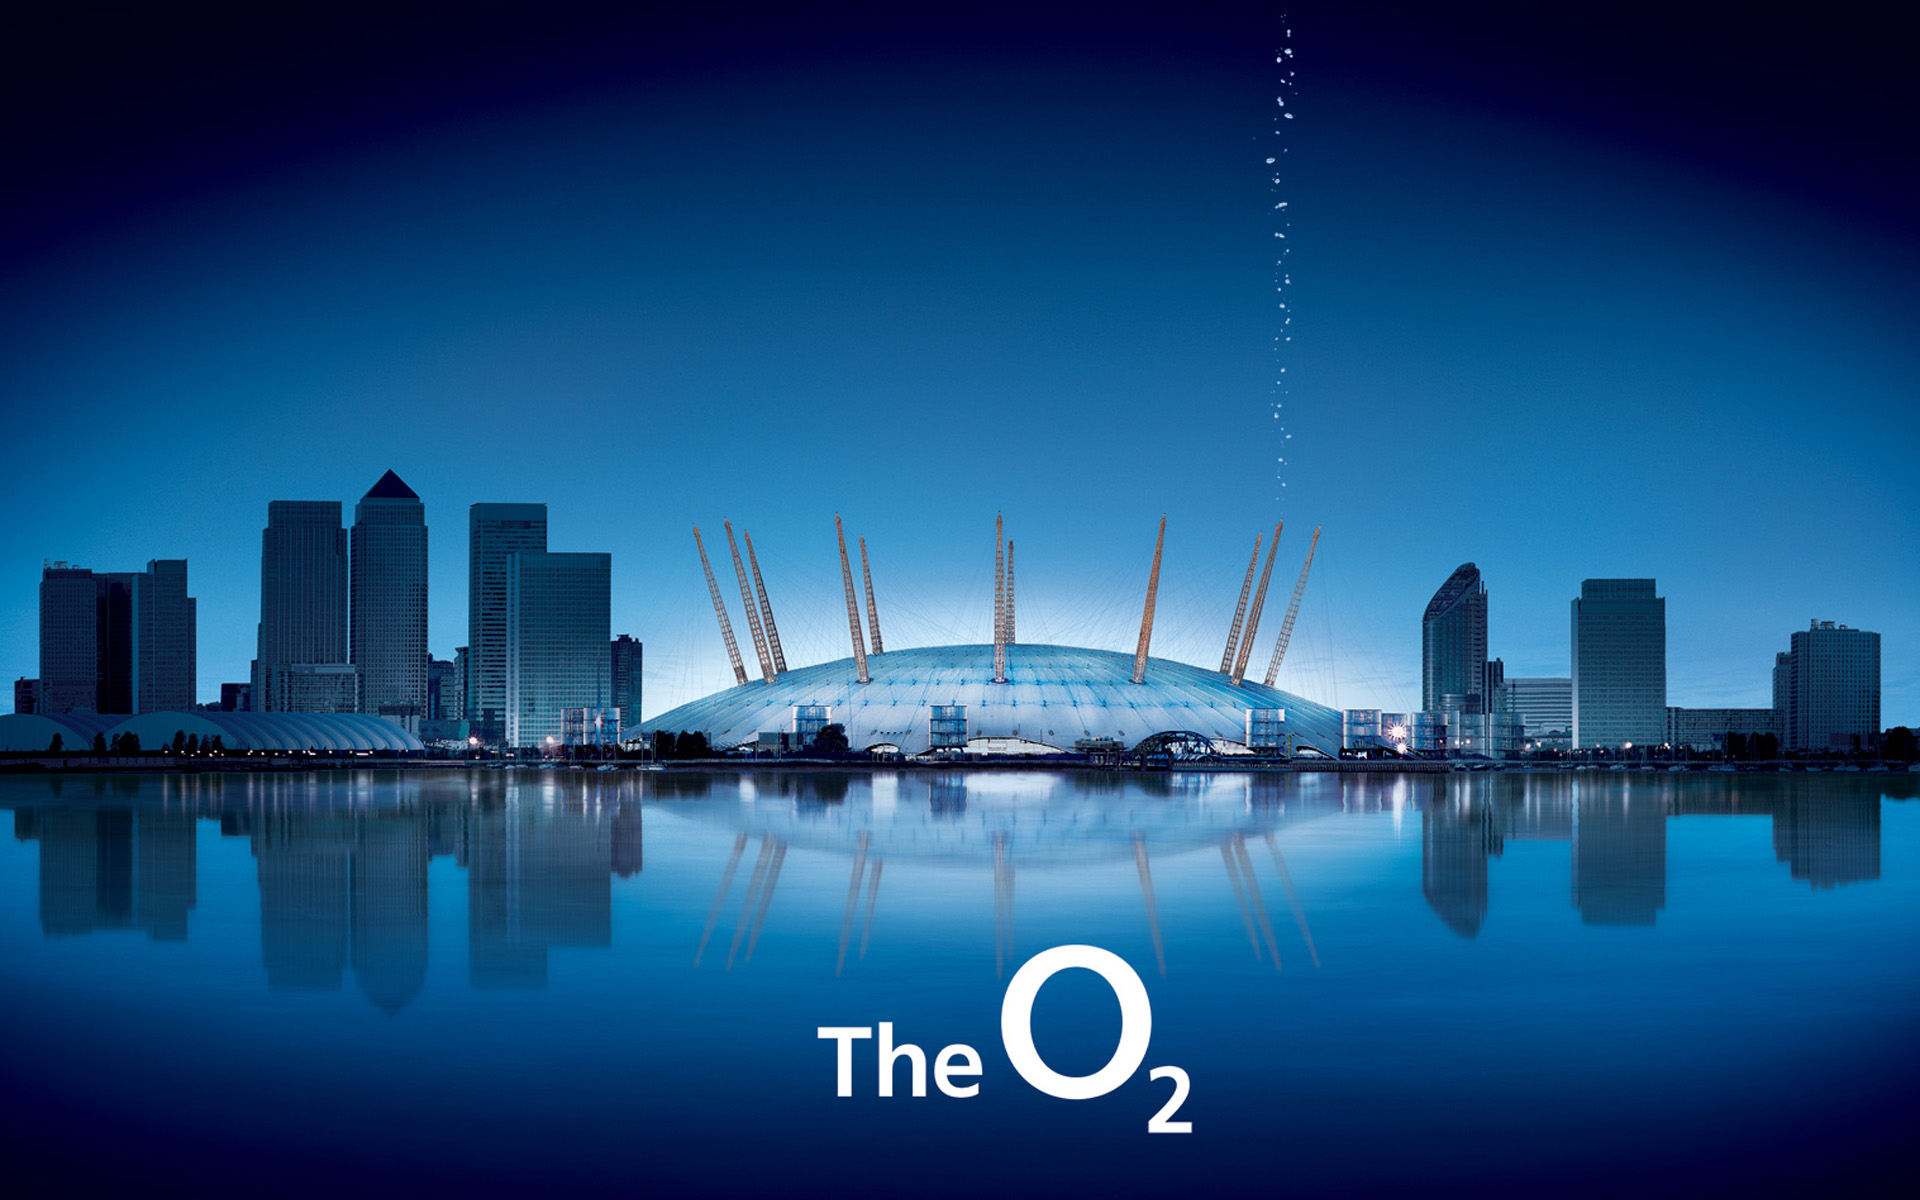 The O2 Arena London 6926176 1920x1200